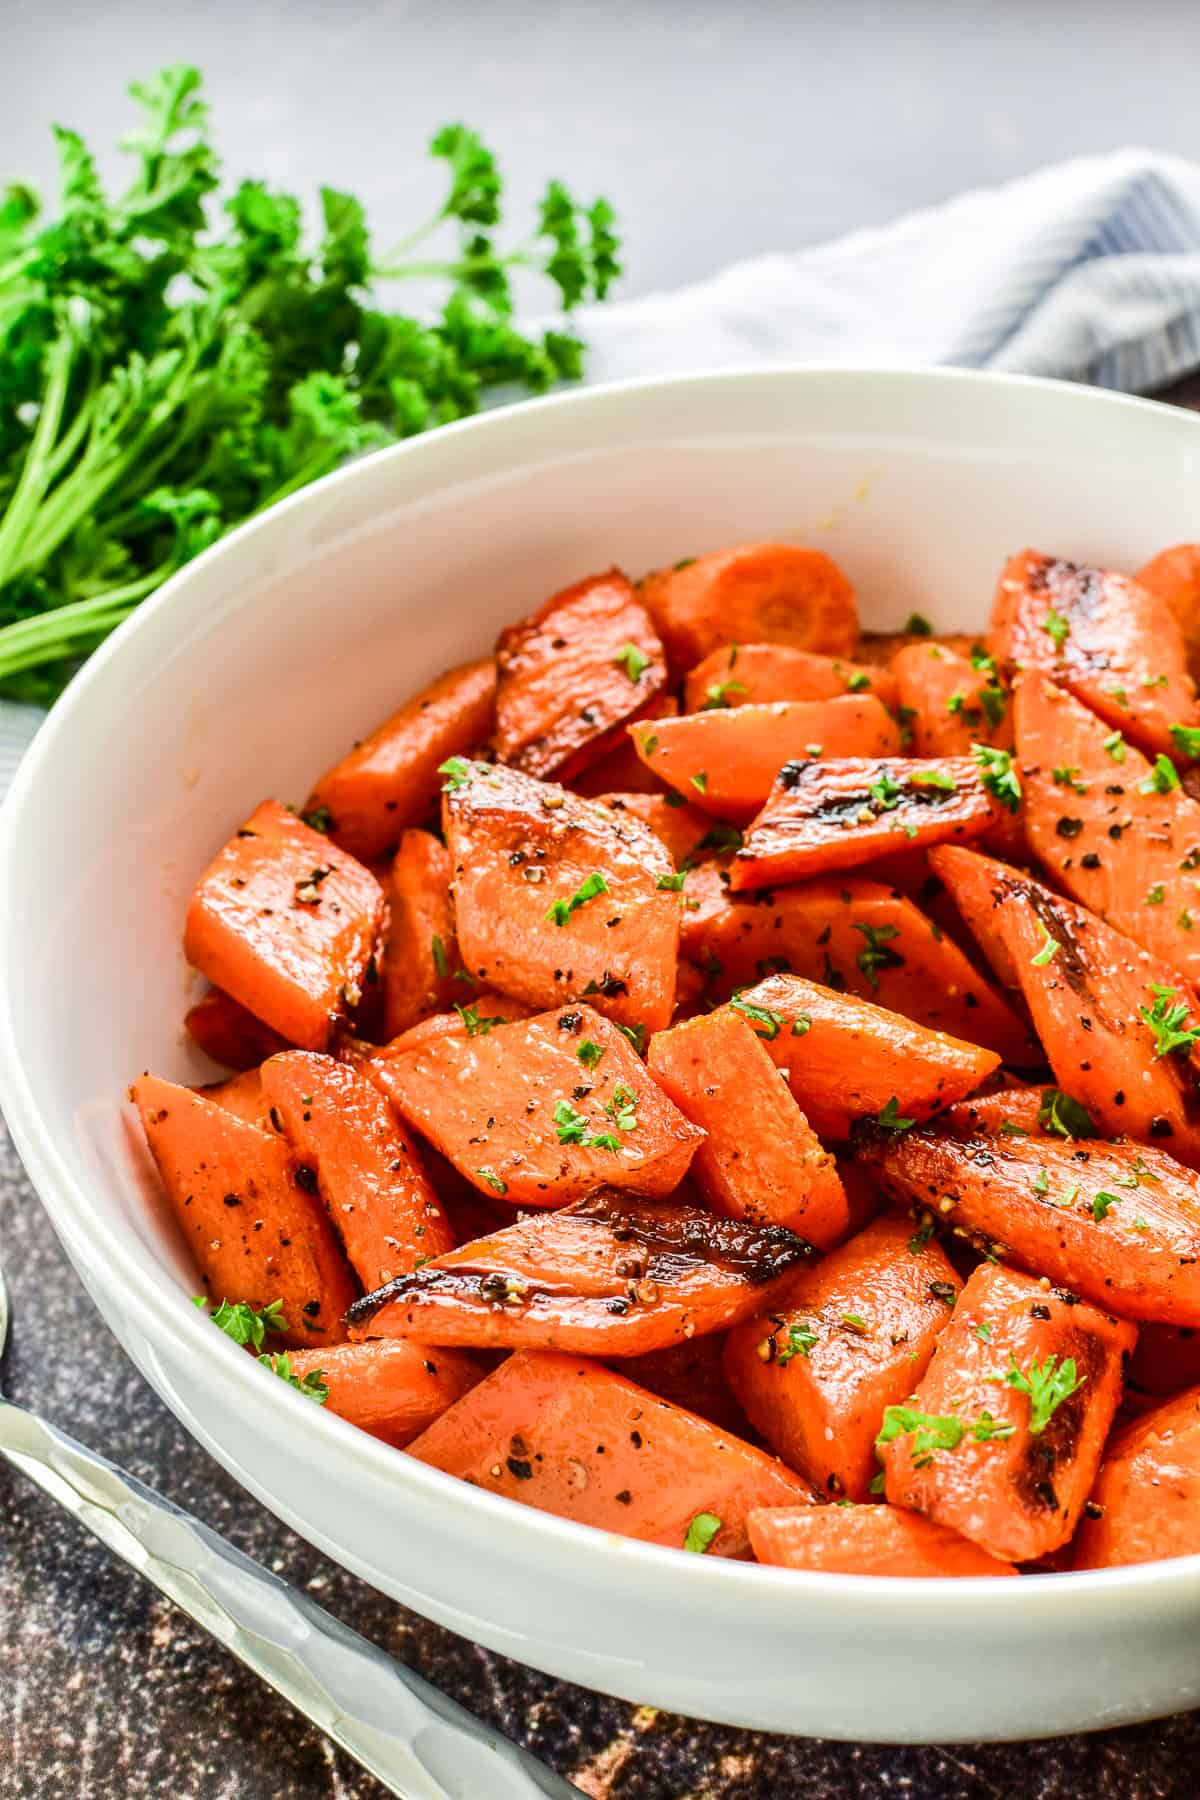 Roasted Carrots in a serving bowl with salt, pepper, and fresh parsley